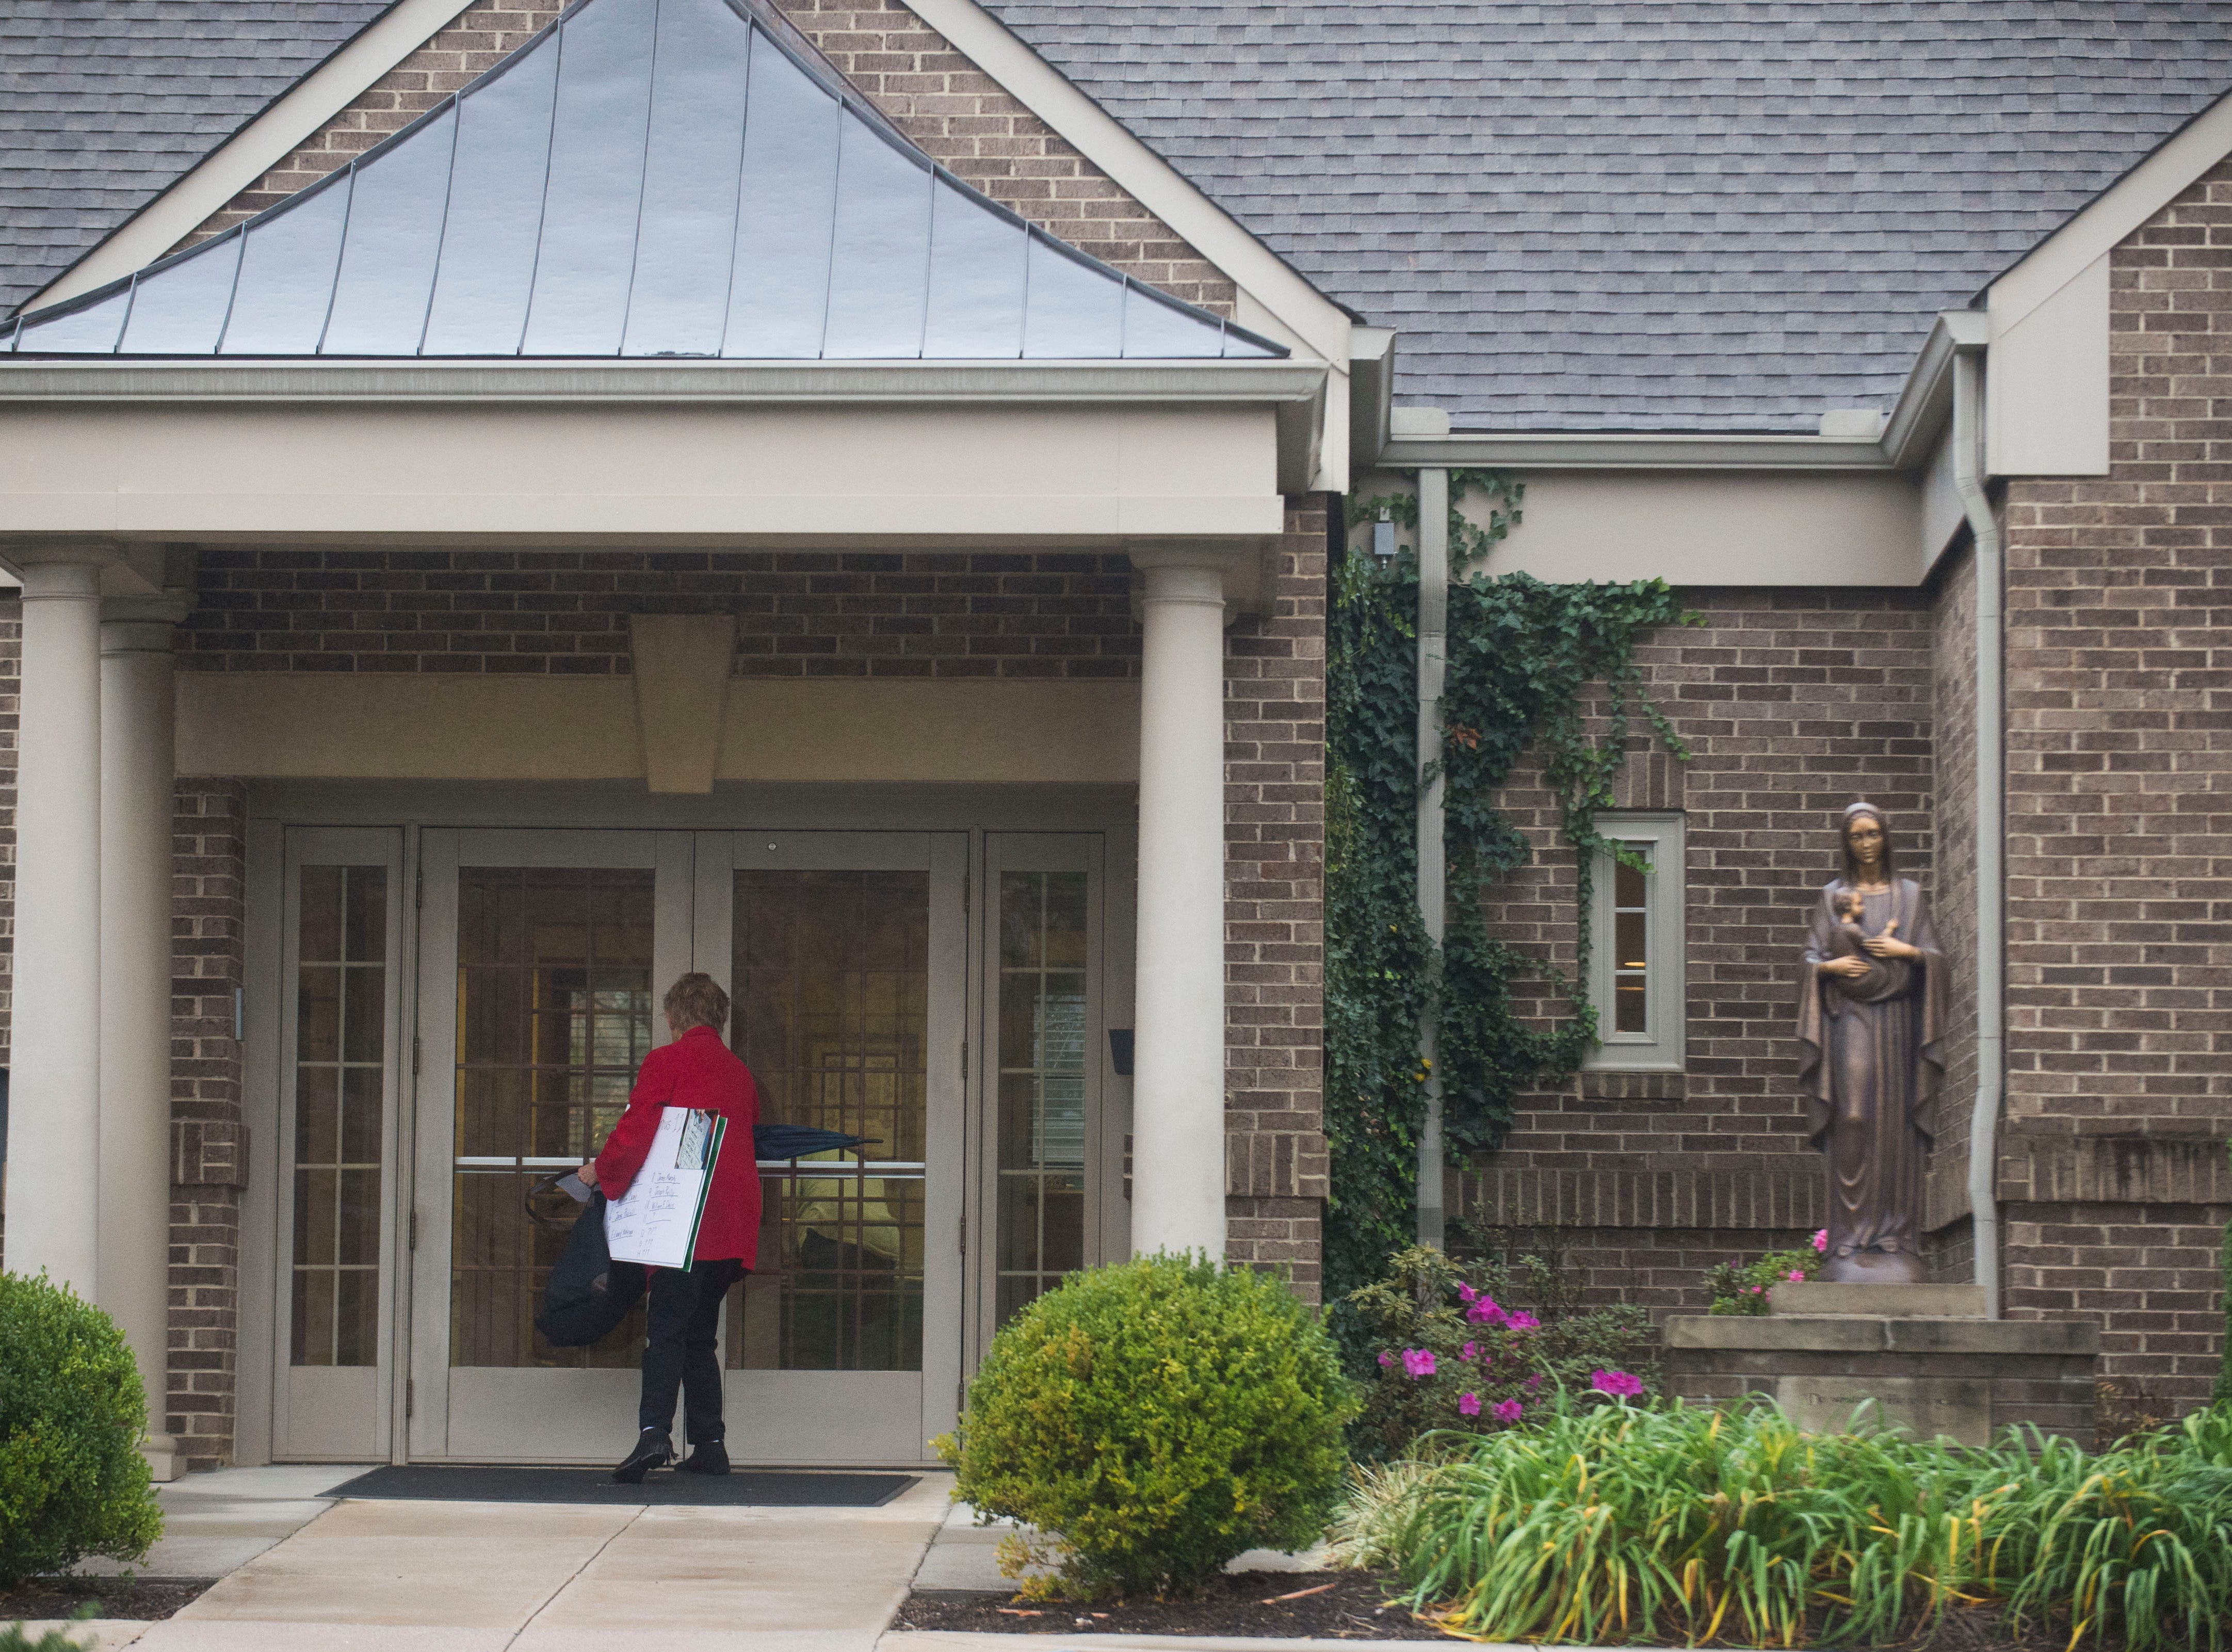 Susan Vance of the Survivors Network of those Abused by Priests, known as SNAP, attempts to deliver a letter to the Chancery Office of the Diocese of Knoxville about alleged Catholic clergy abuse in Tennessee on Nov. 9, 2018.